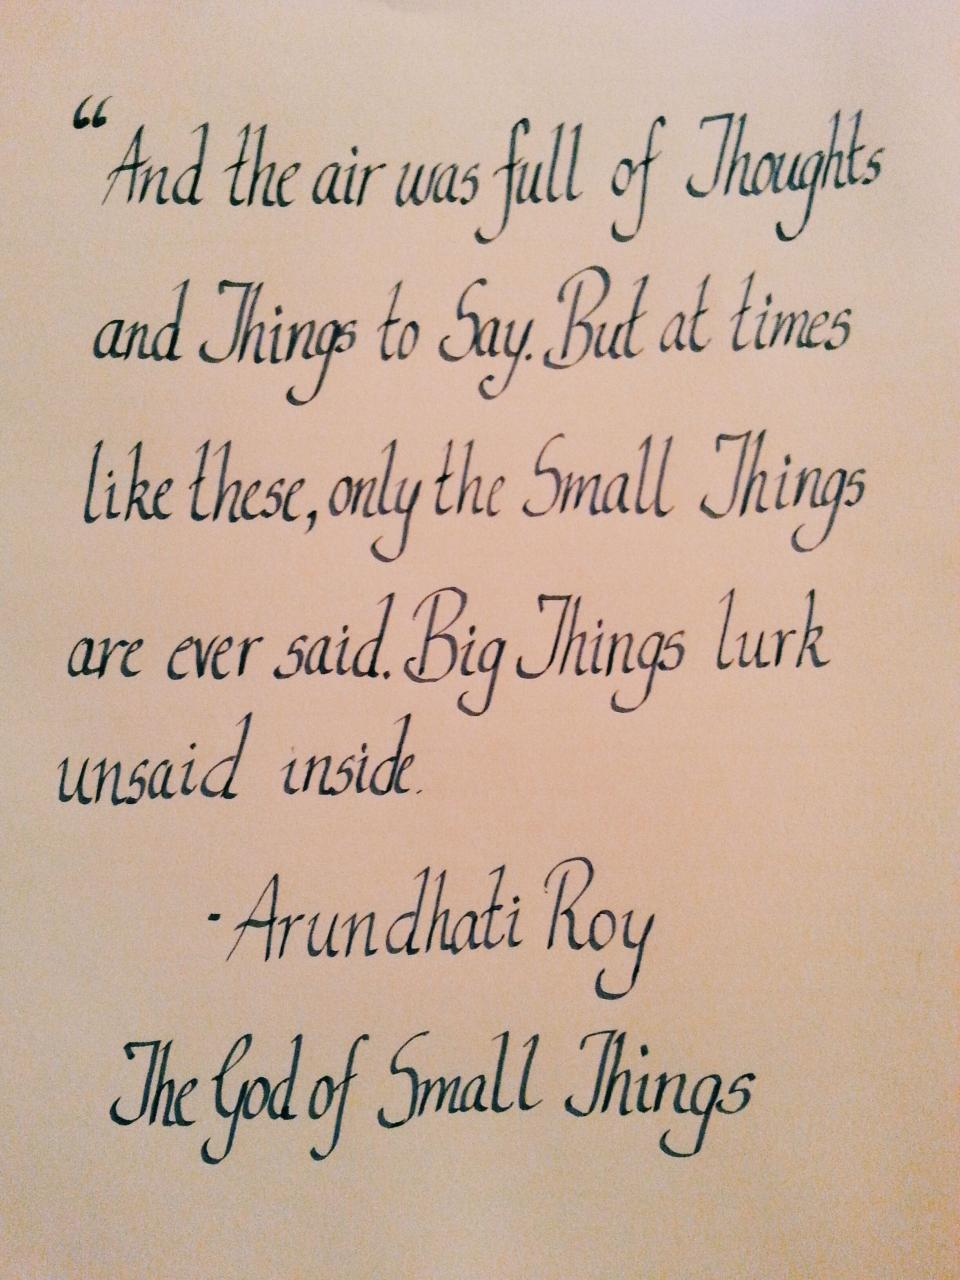 Of Small Things Arundhati Roy